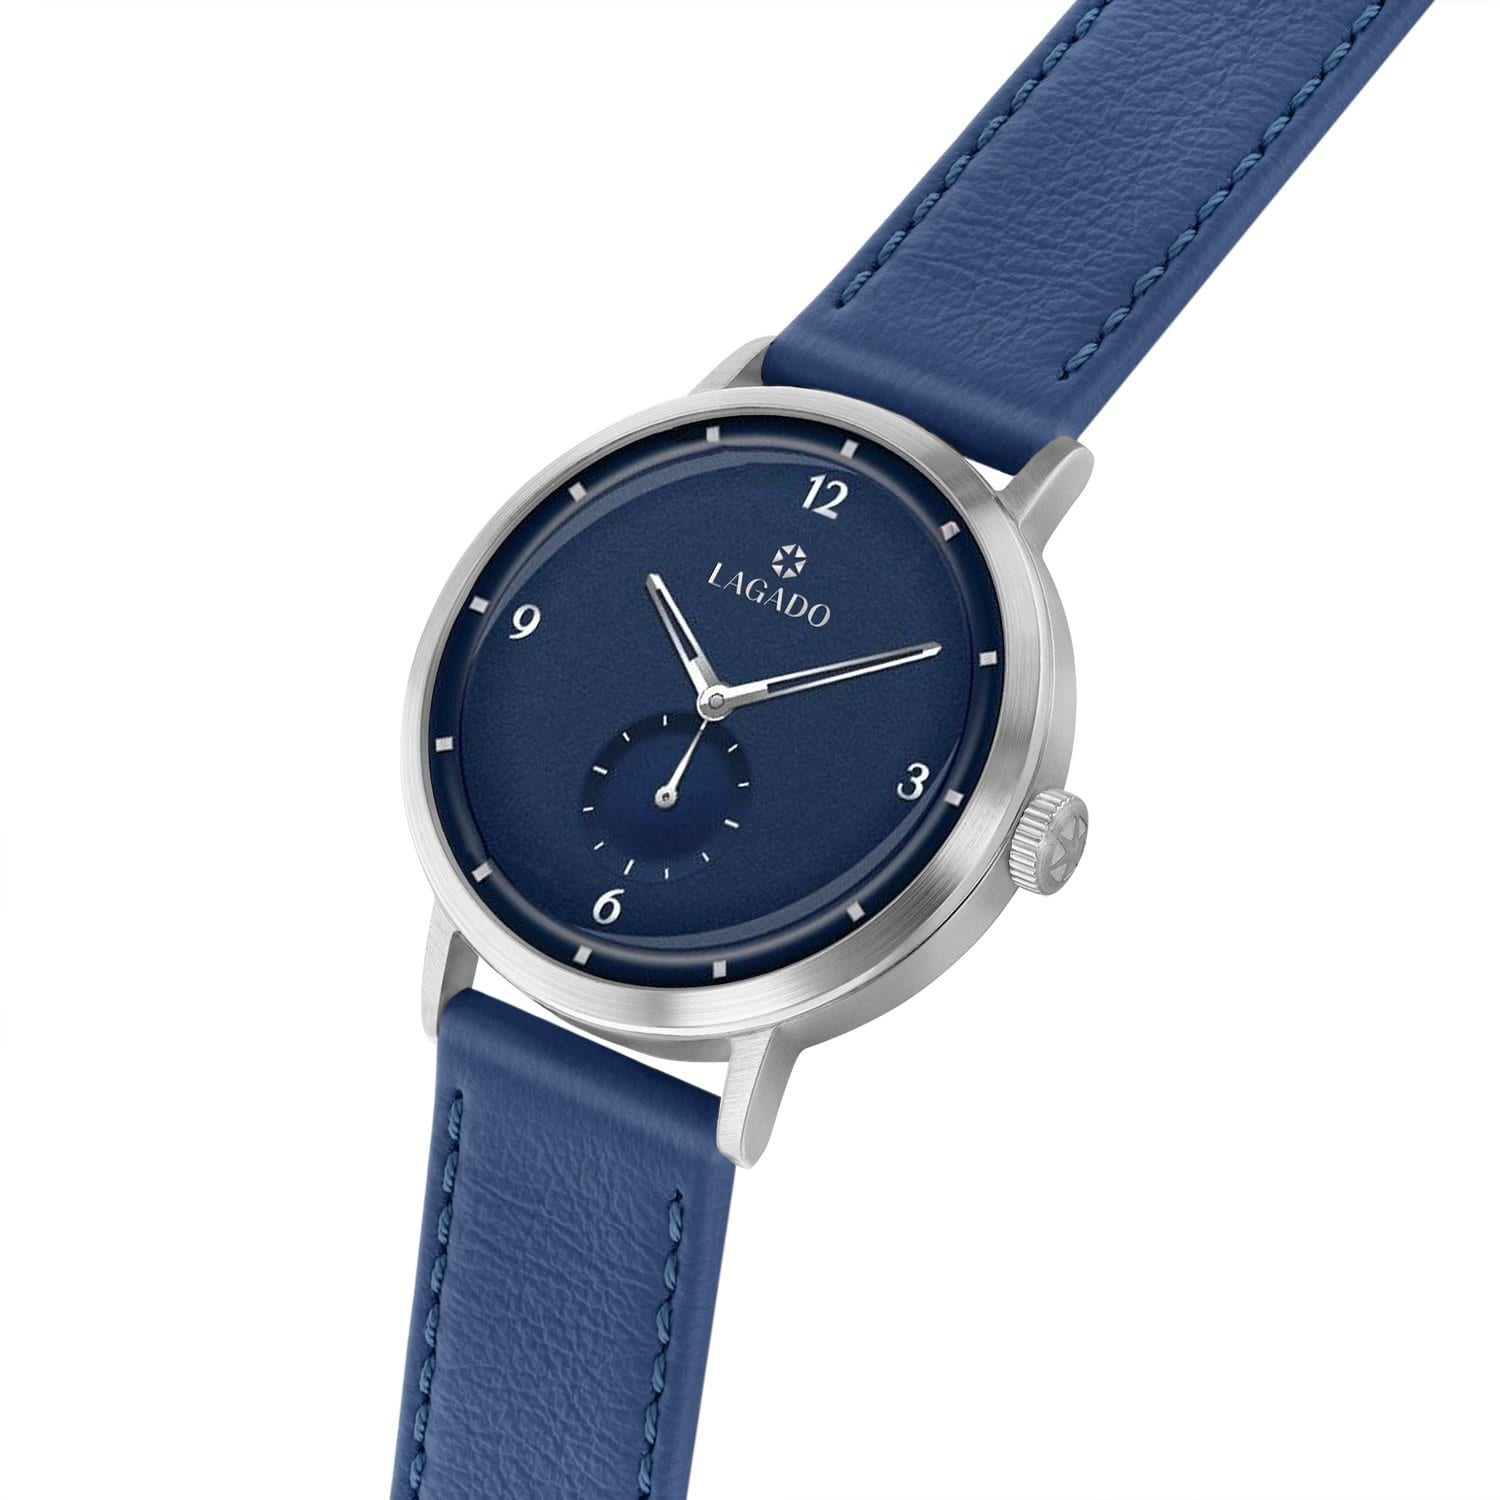 Aqua-Lagado Watches